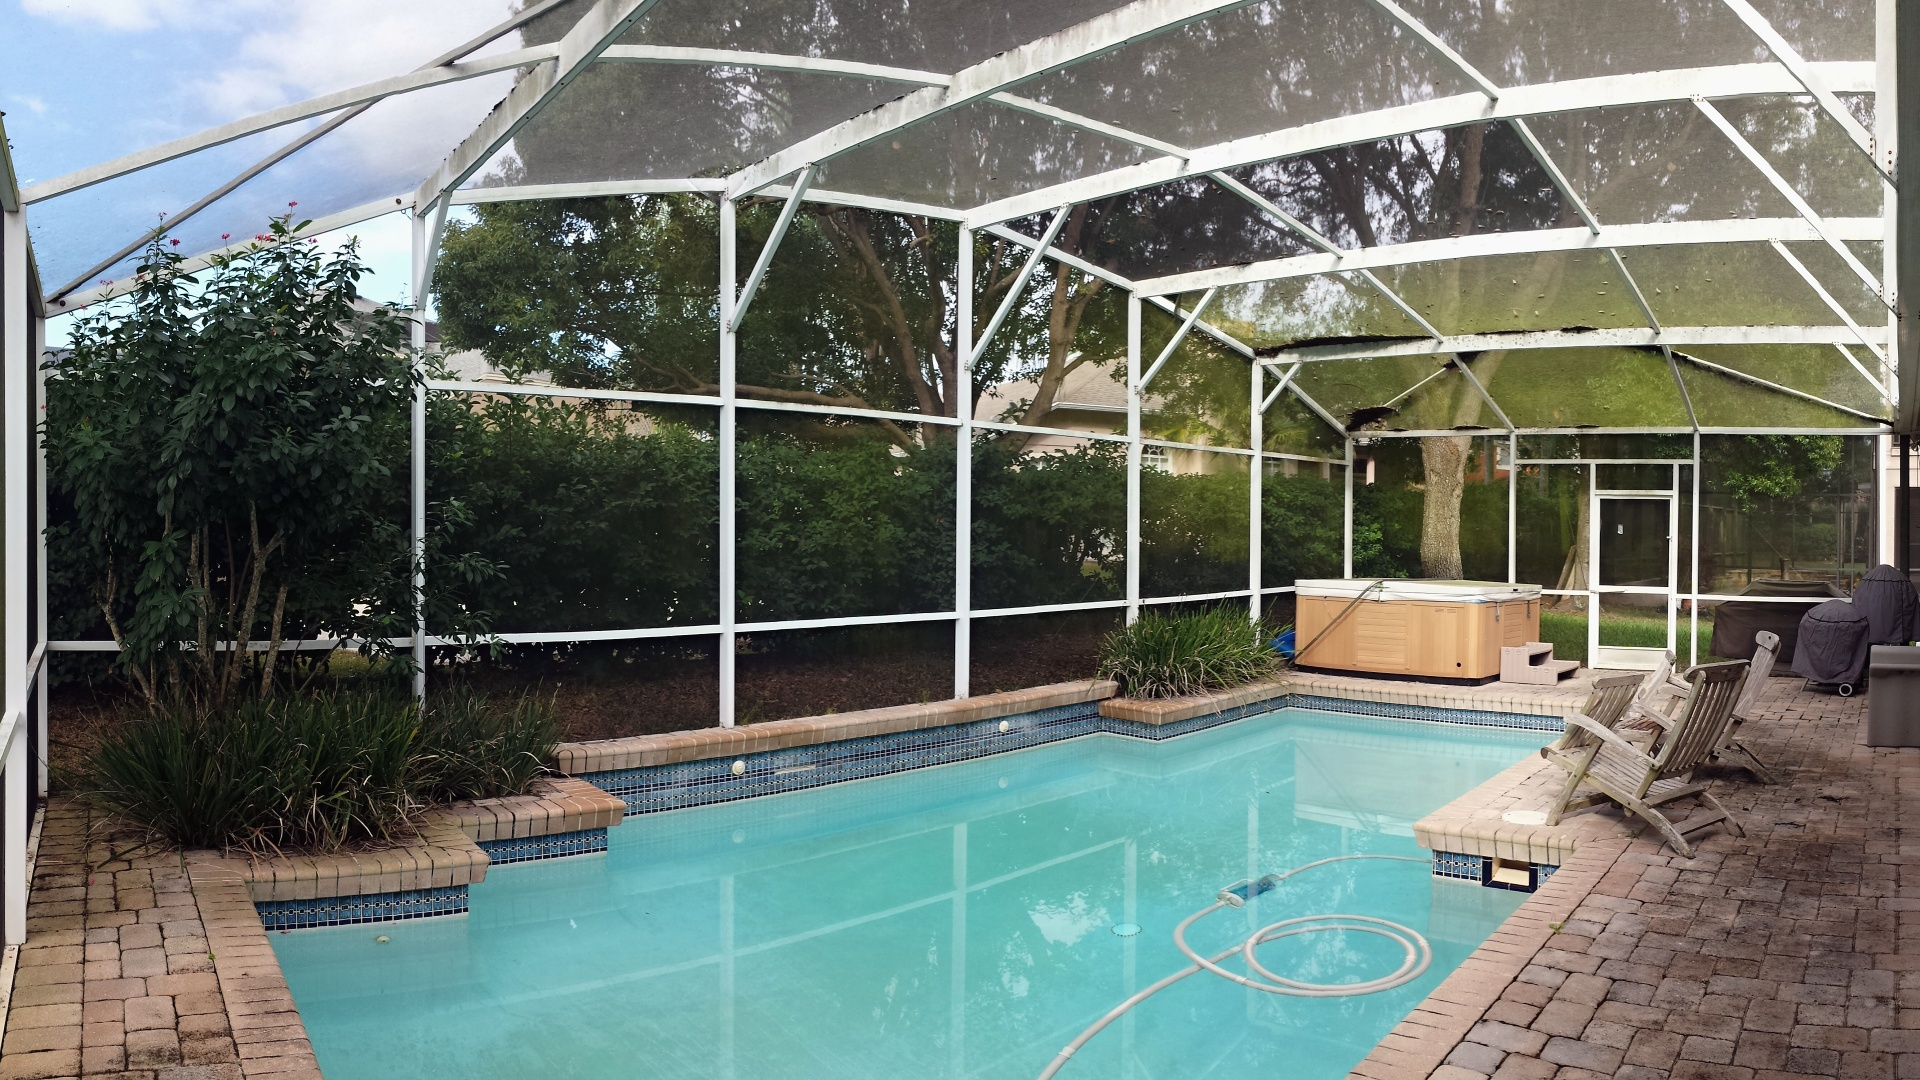 pool-screen-repair-orlando-01-1080p.jpg